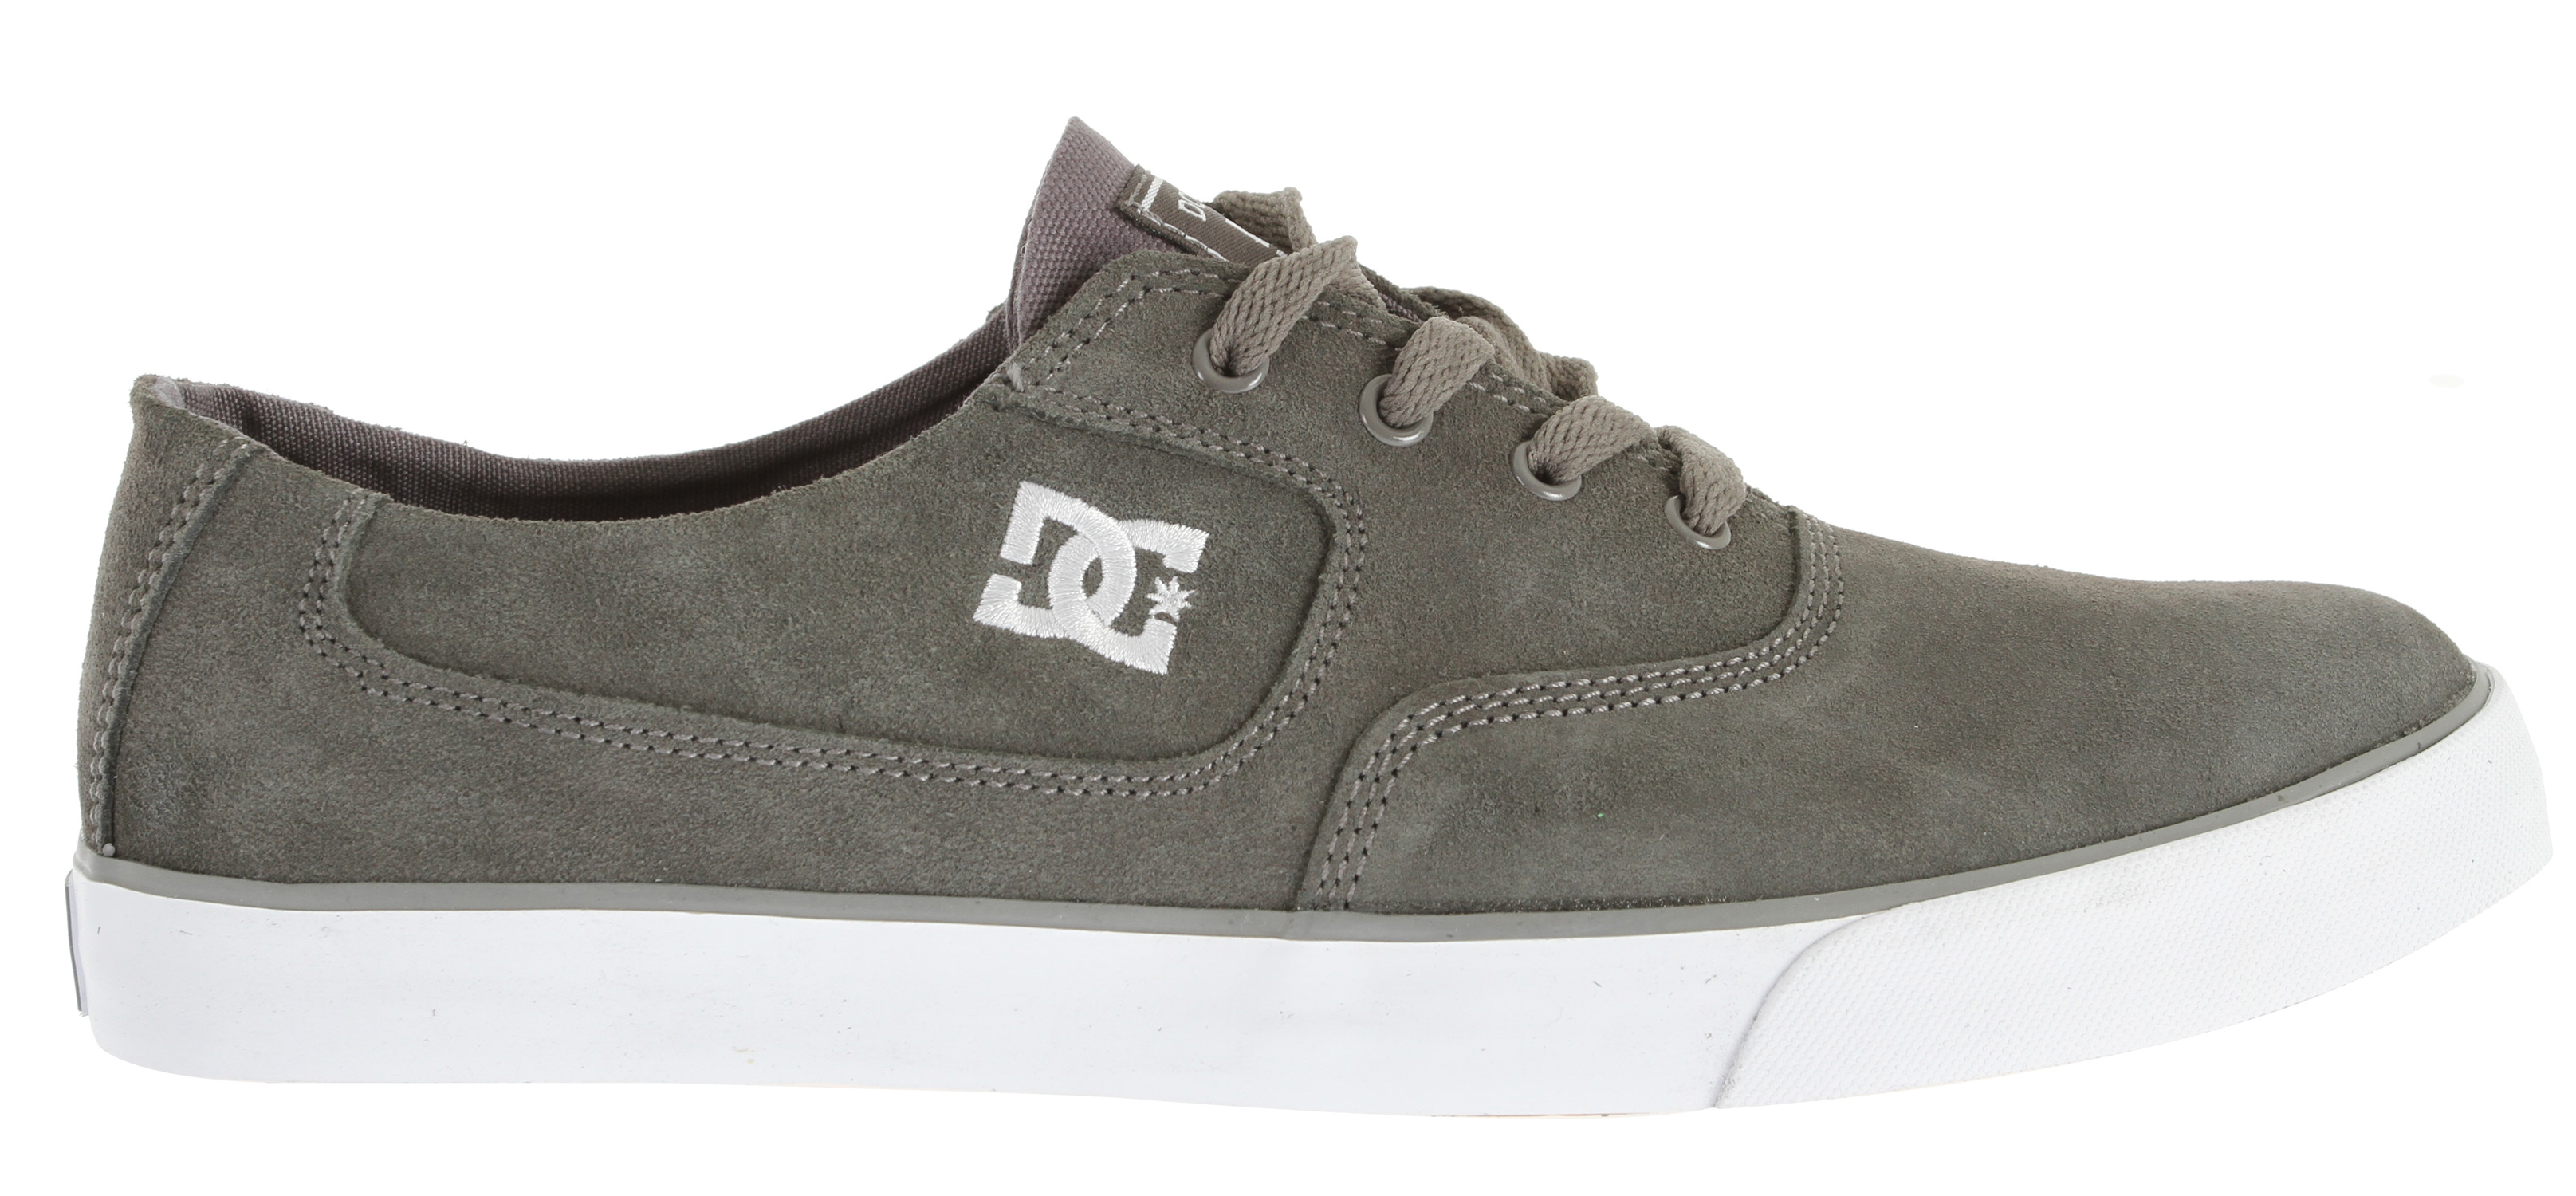 "Skateboard Key Features of the DC Flash Skate Shoes: Canvas upper Abrasion-Resistant Sticky Rubber Outsole DC's Trademarked ""Pill"" Pattern Embroidered DC logo Does not come in a box - $39.95"